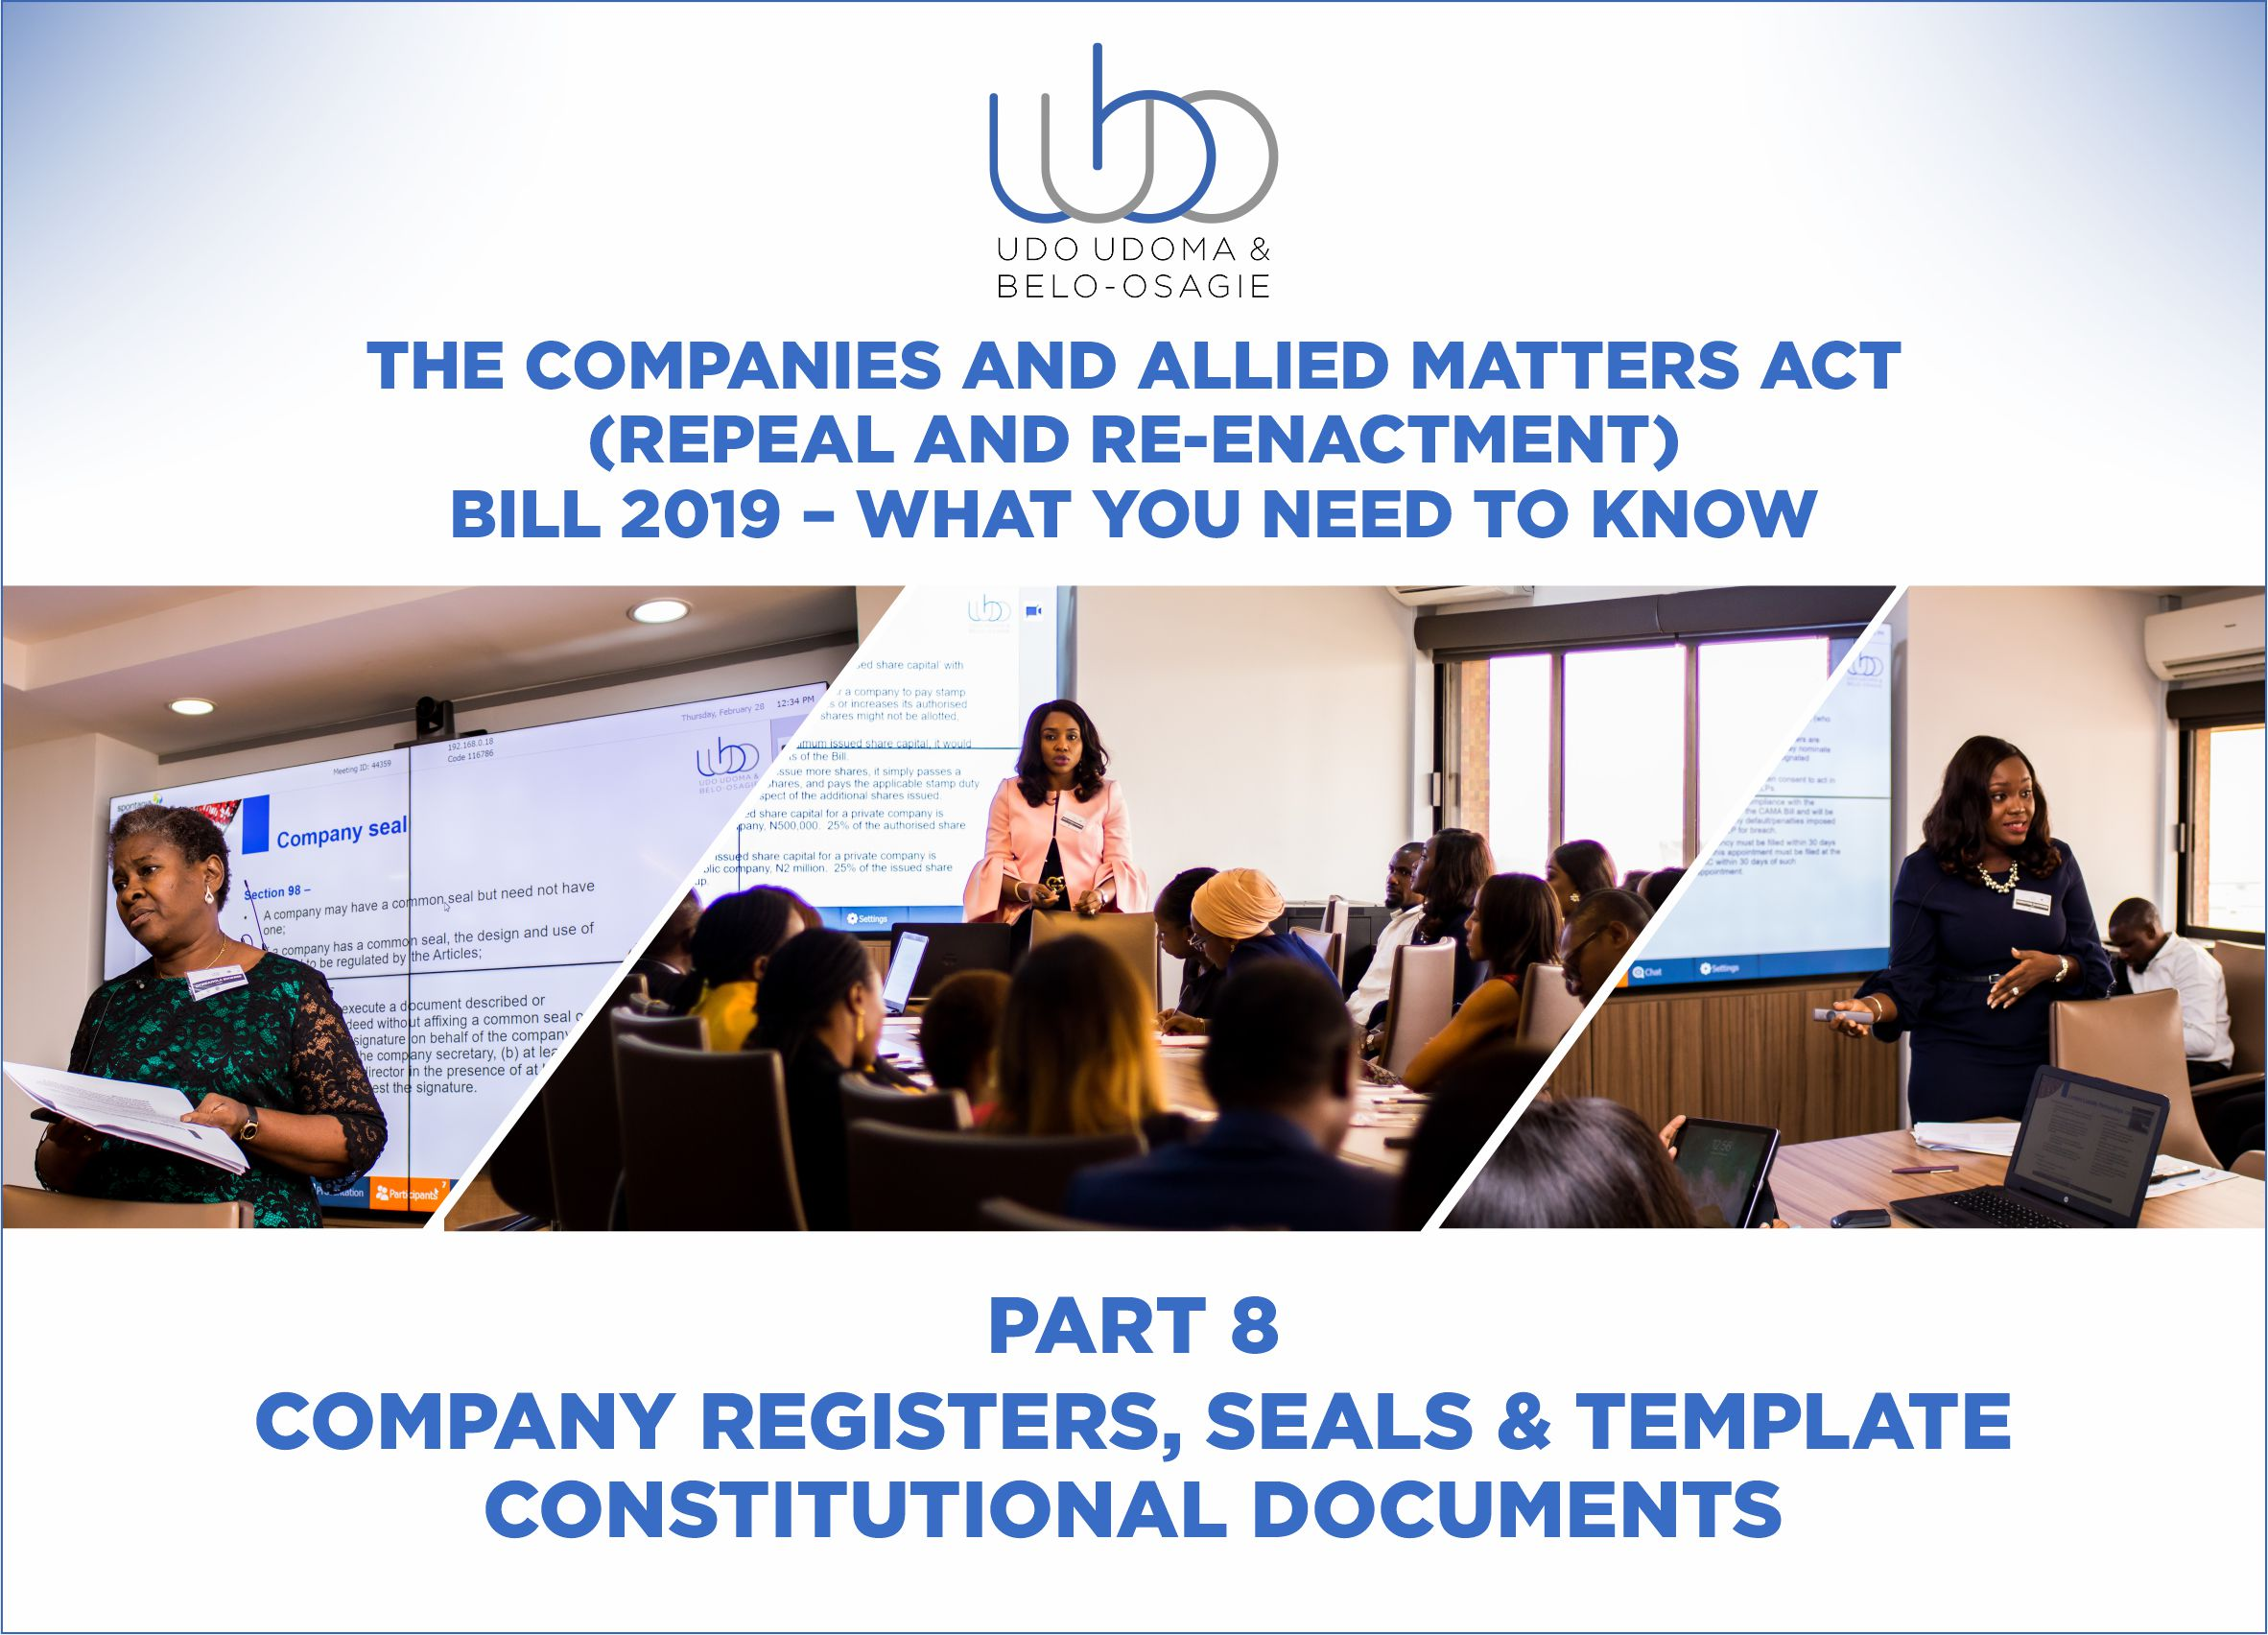 THE COMPANIES AND ALLIED MATTERS (REPEAL AND RE-ENACTMENT BILL) 2018 - PART 8